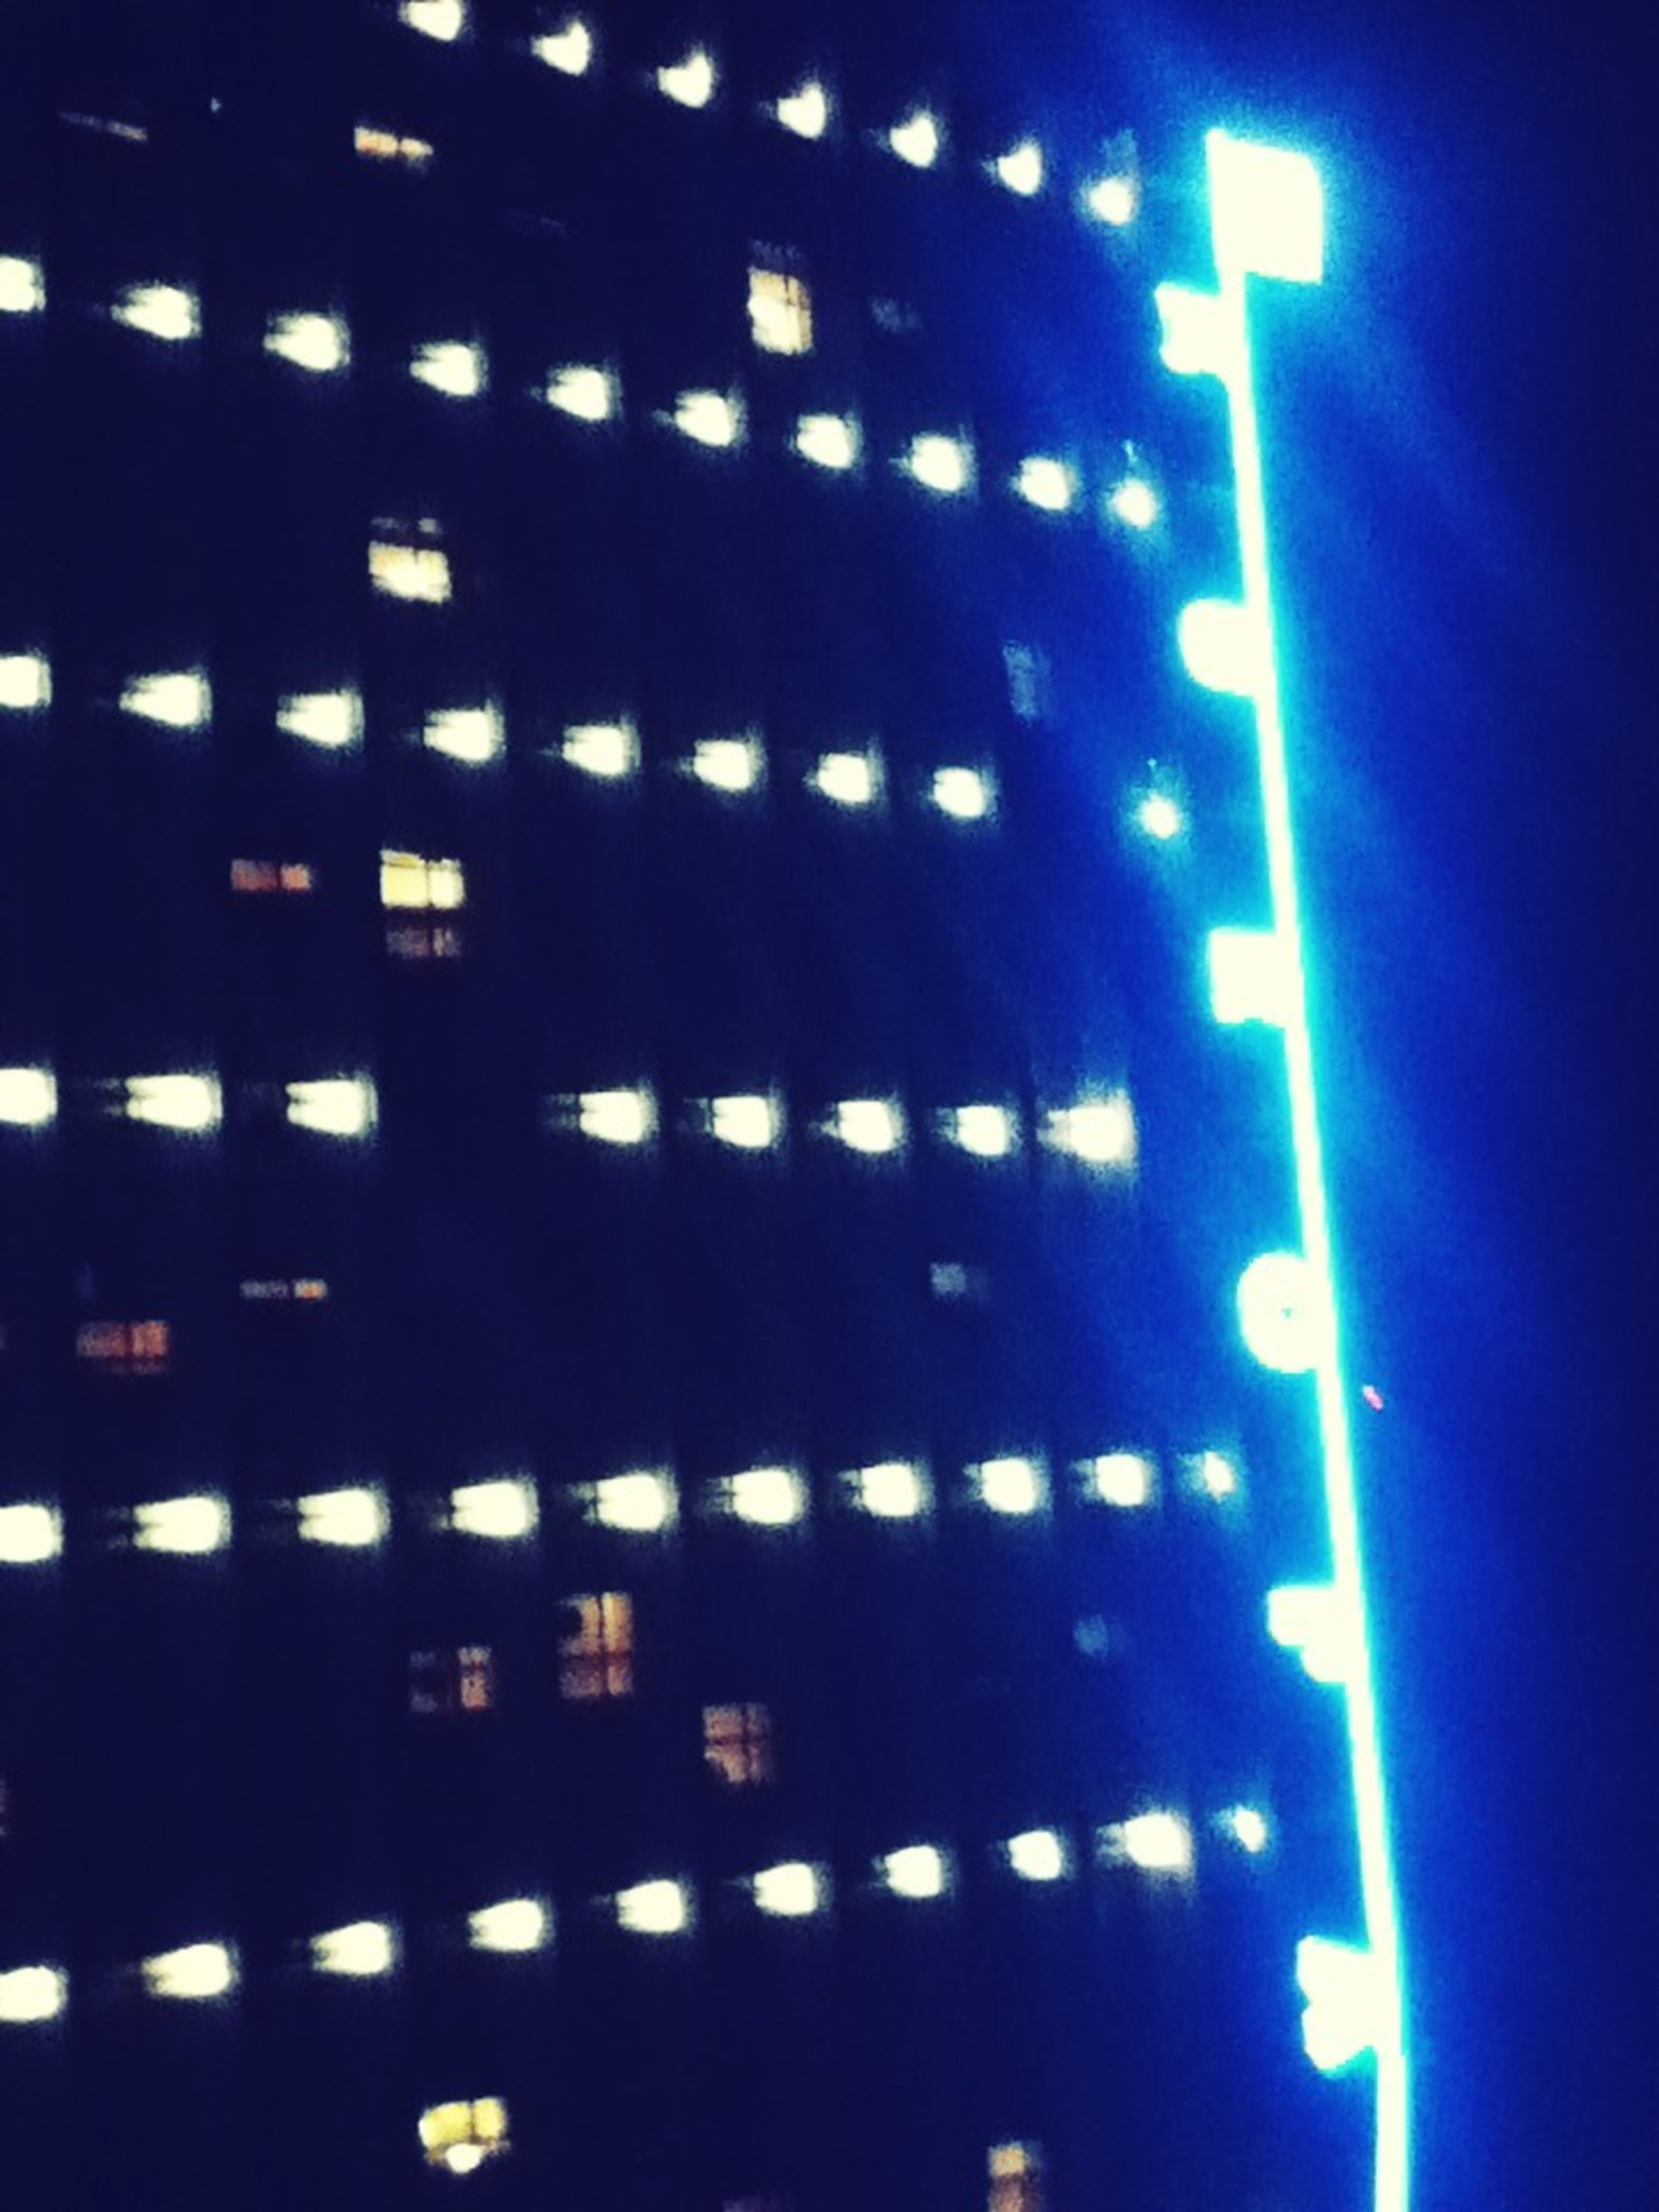 illuminated, night, indoors, lighting equipment, architecture, built structure, low angle view, light - natural phenomenon, pattern, glowing, in a row, building, repetition, modern, electric light, light, no people, building exterior, reflection, window